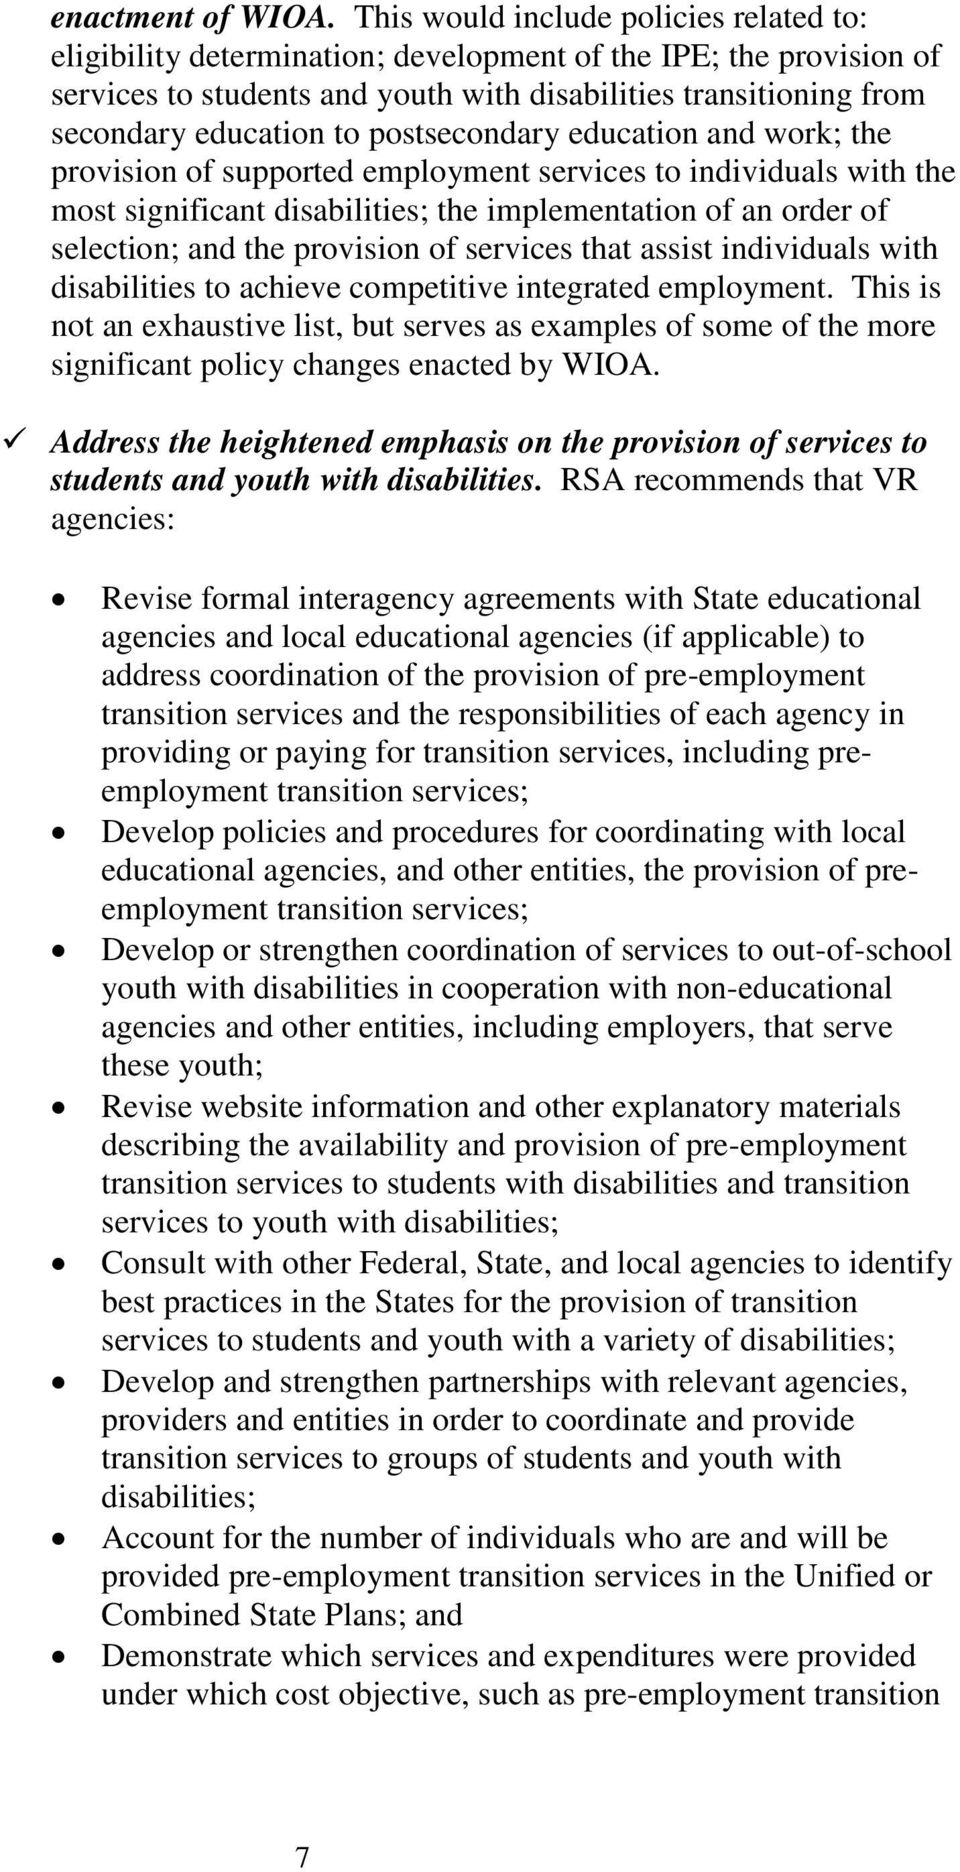 postsecondary education and work; the provision of supported employment services to individuals with the most significant disabilities; the implementation of an order of selection; and the provision